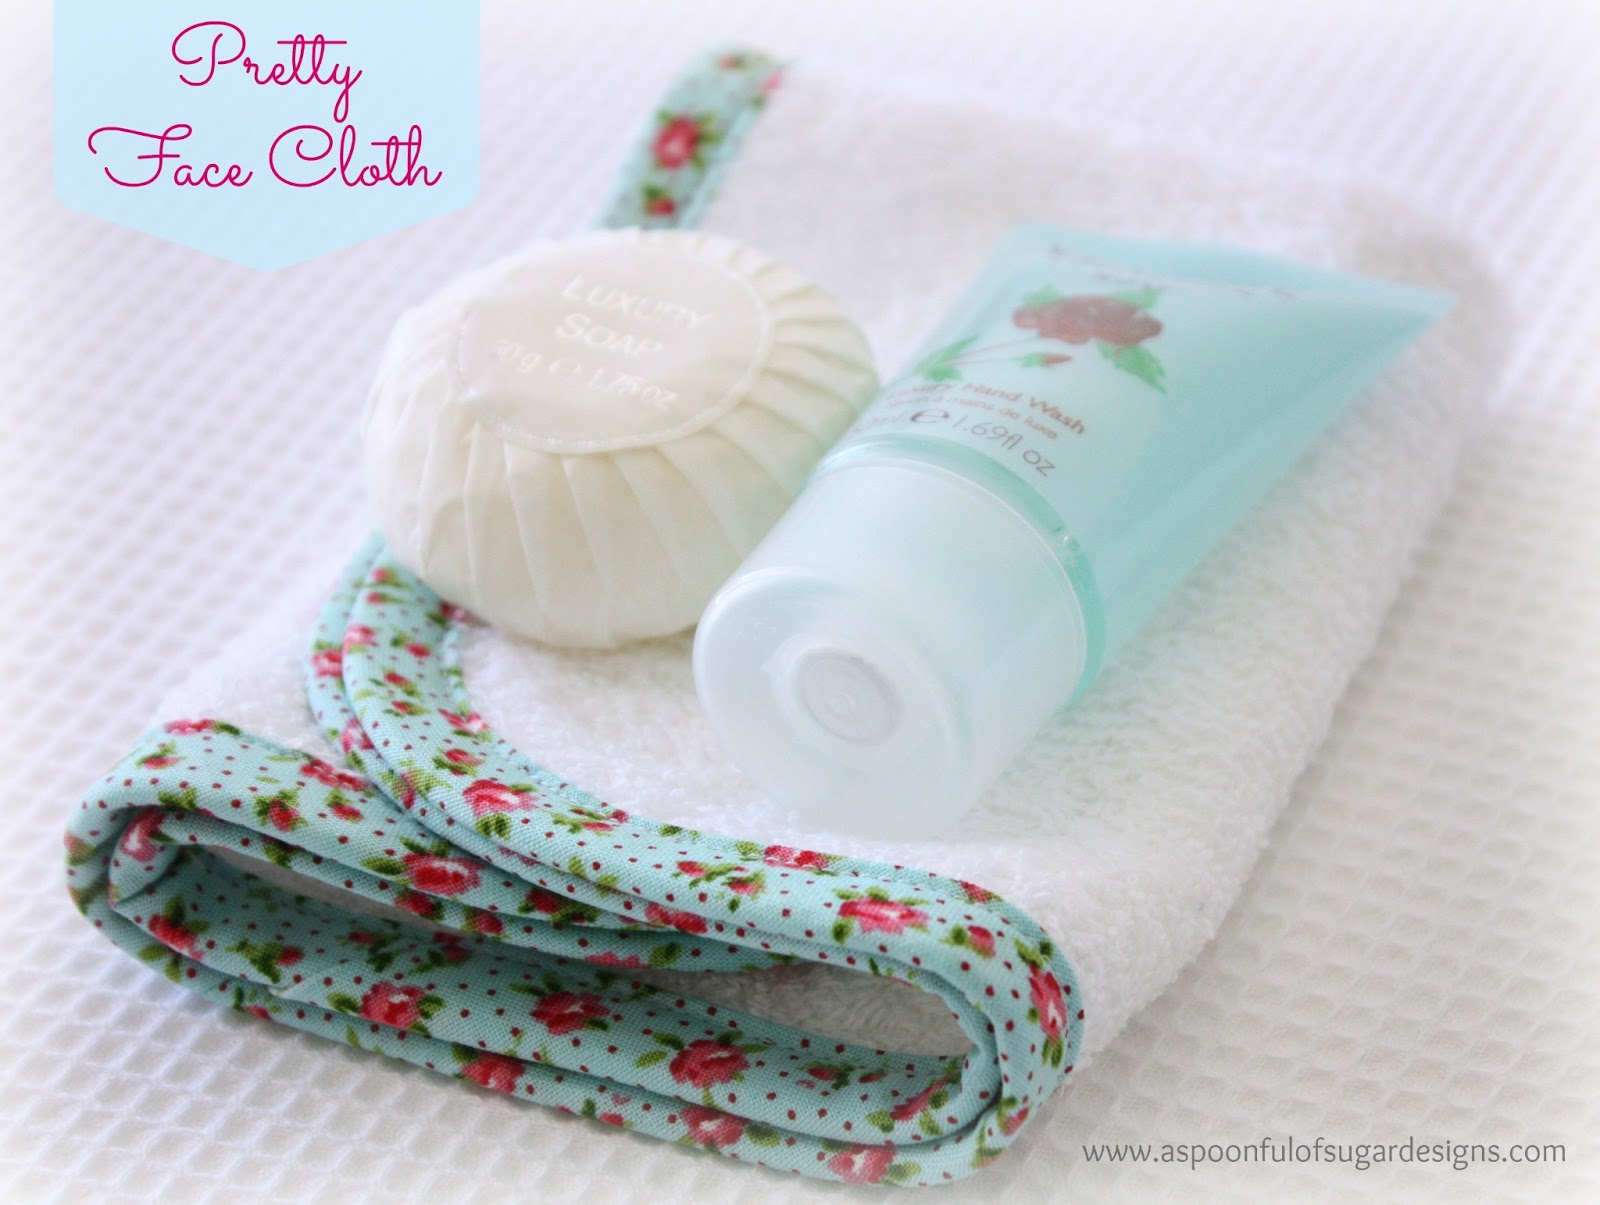 Pretty Face Cloth - A Spoonful of Sugar